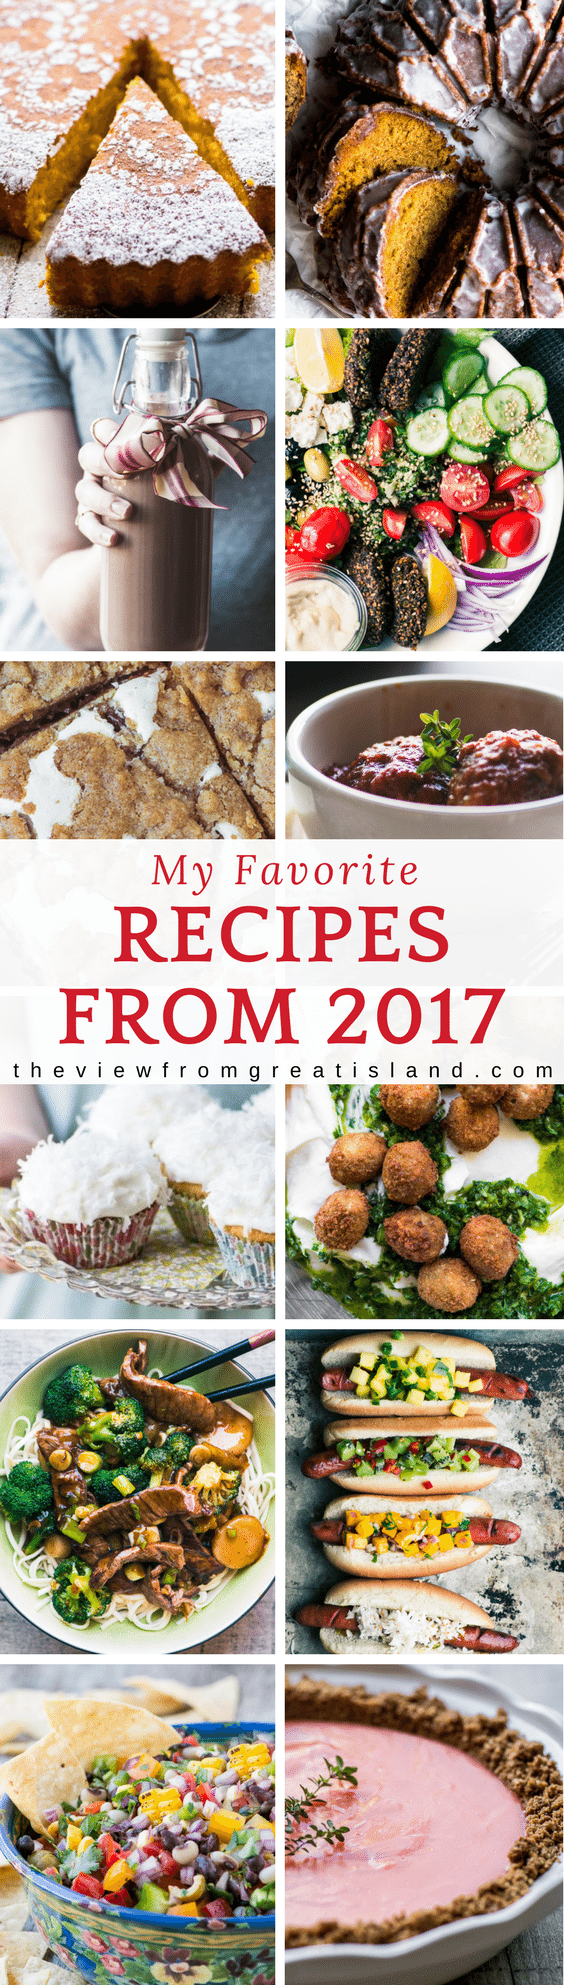 My favorite Recipes of 2017 ~ these are the ones I personally loved, and if you missed them, I recommend giving them a try. 2017 was a pretty tasty year! #roundup #recipes #favoriterecipes #recipes2017 #theviewfromgreatisland #newyears